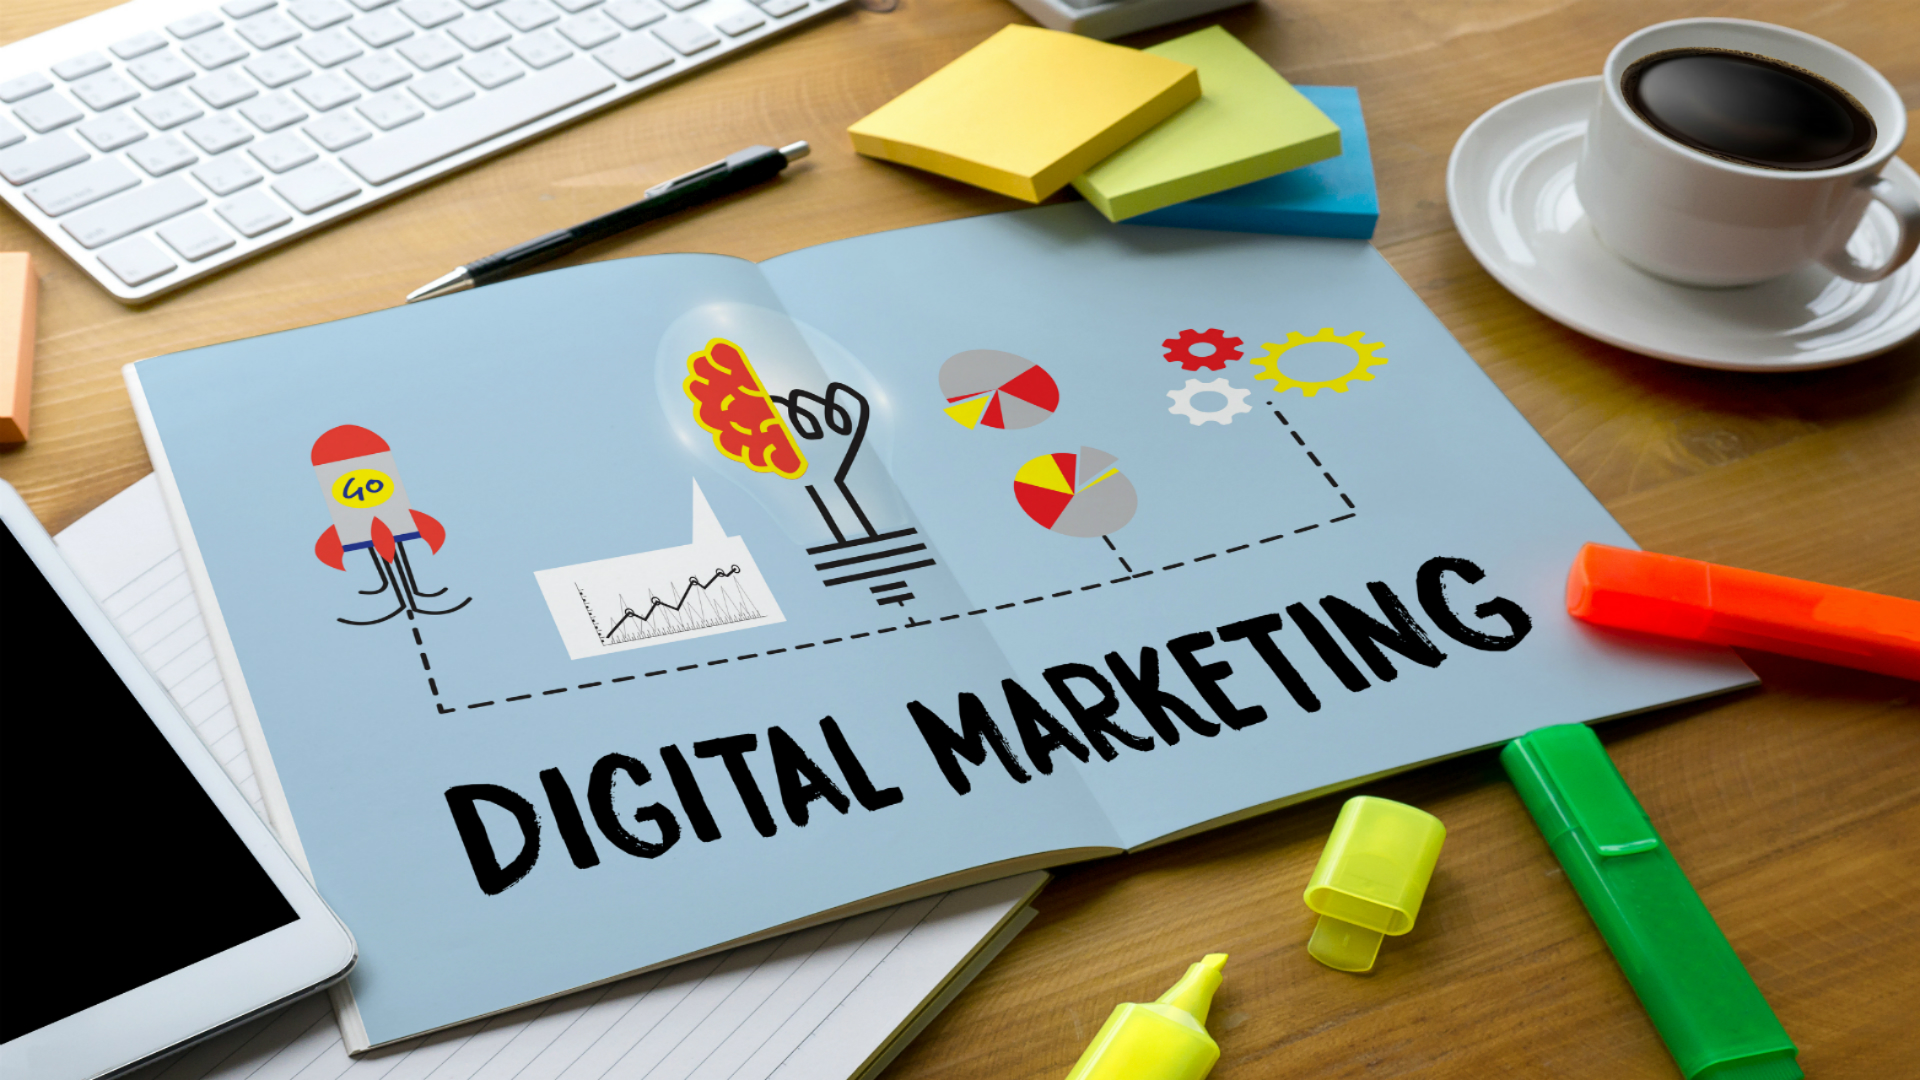 Digital-Marketing-The-Ultimate-Way-to-Boost-Your-Business.jpg